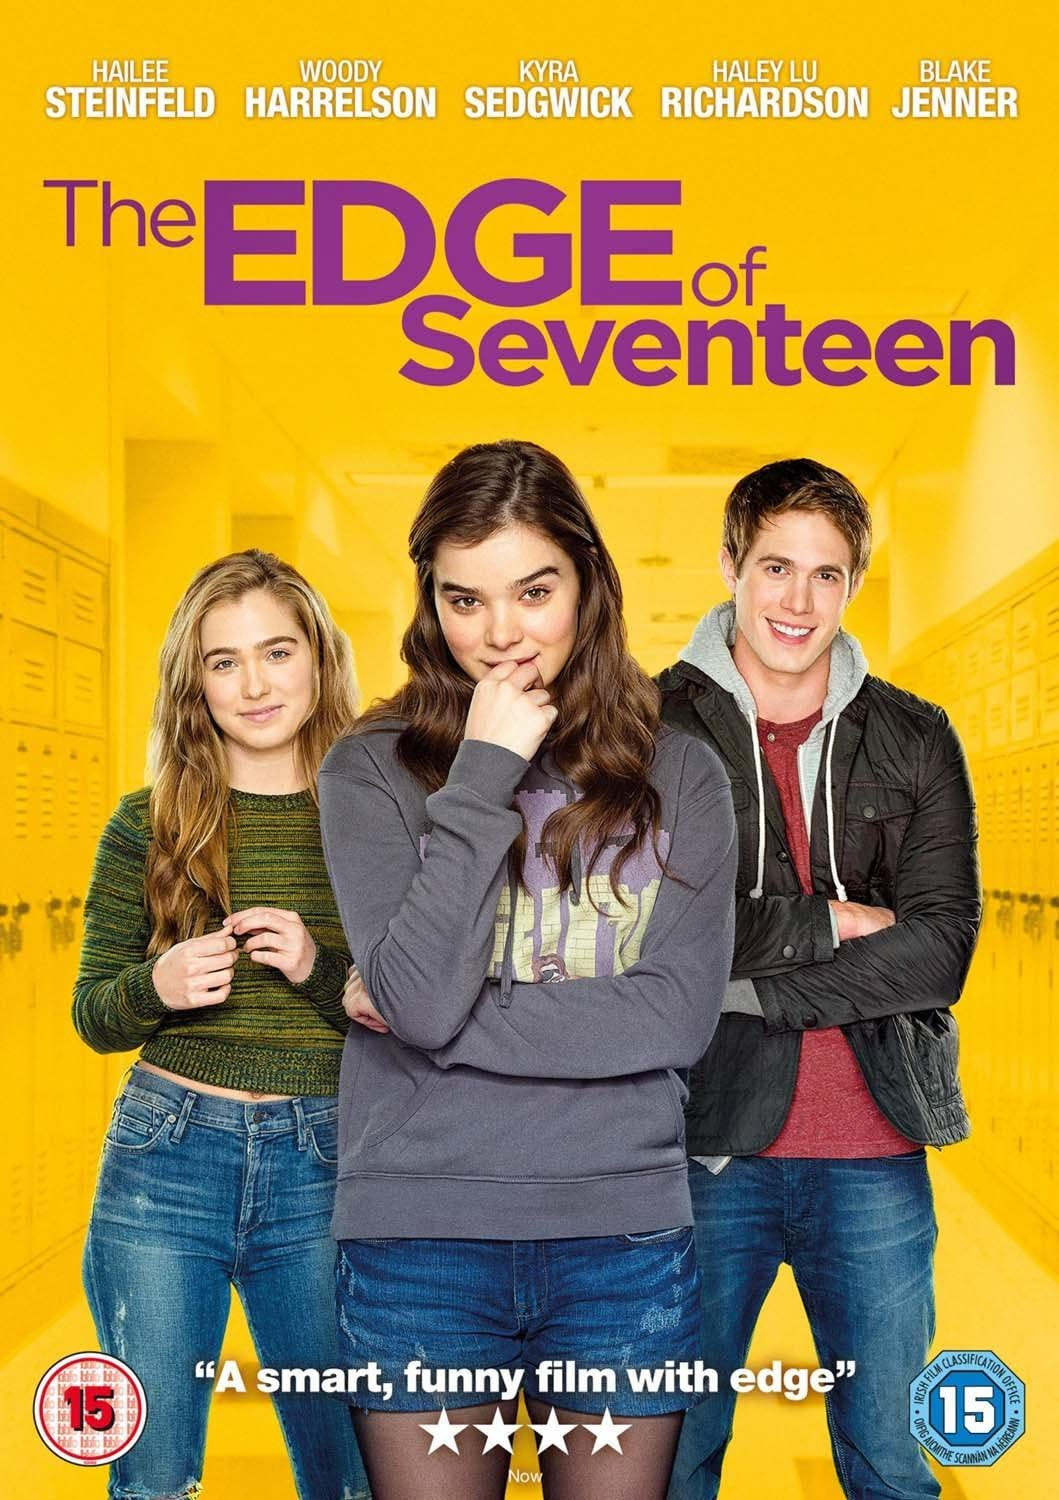 The Edge Of Seventeen [DVD]: Amazon.co.uk: Hailee Steinfeld, Woody  Harrelson, Woody Harrelson, Kelly Fremon Craig, Hailee Steinfeld, Woody  Harrelson: DVD & Blu-ray